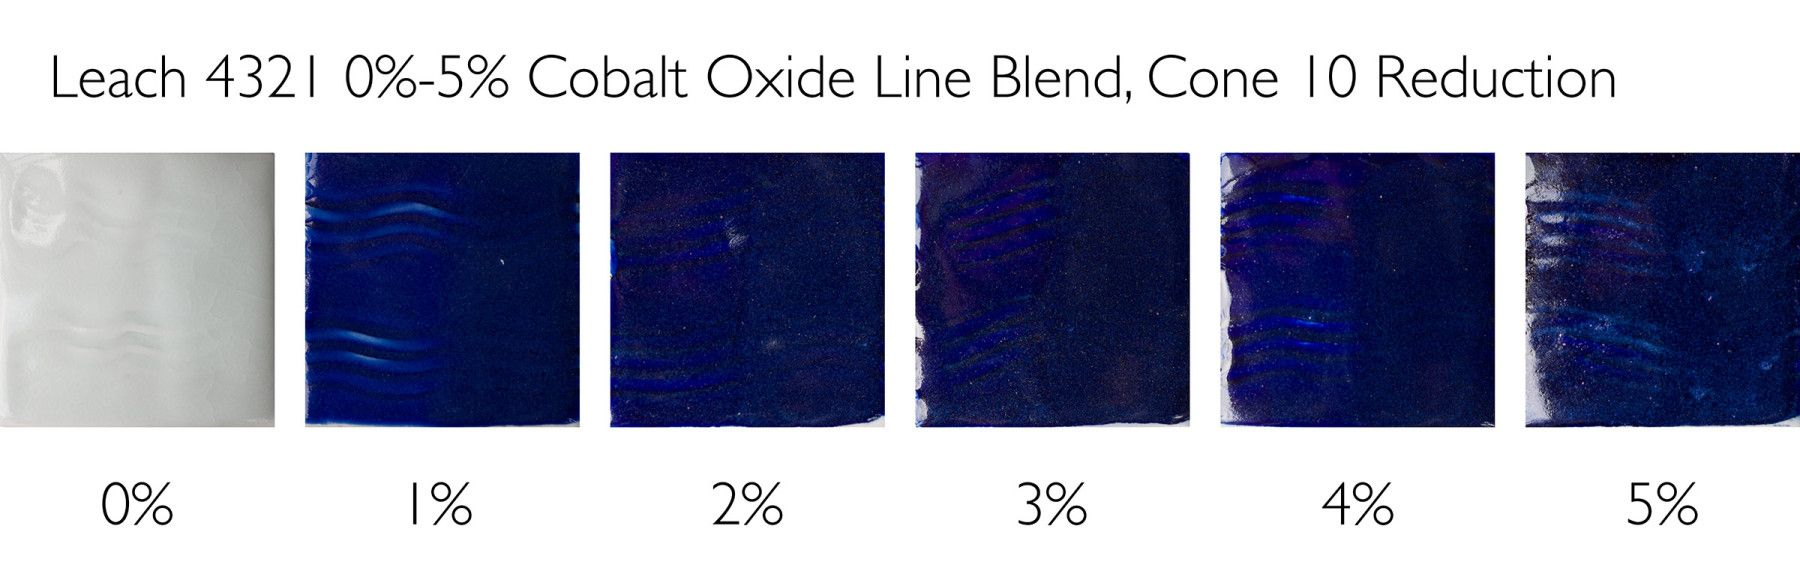 Volumetric Blending: Leach 4321 with Cobalt Oxide added in 1% increments.